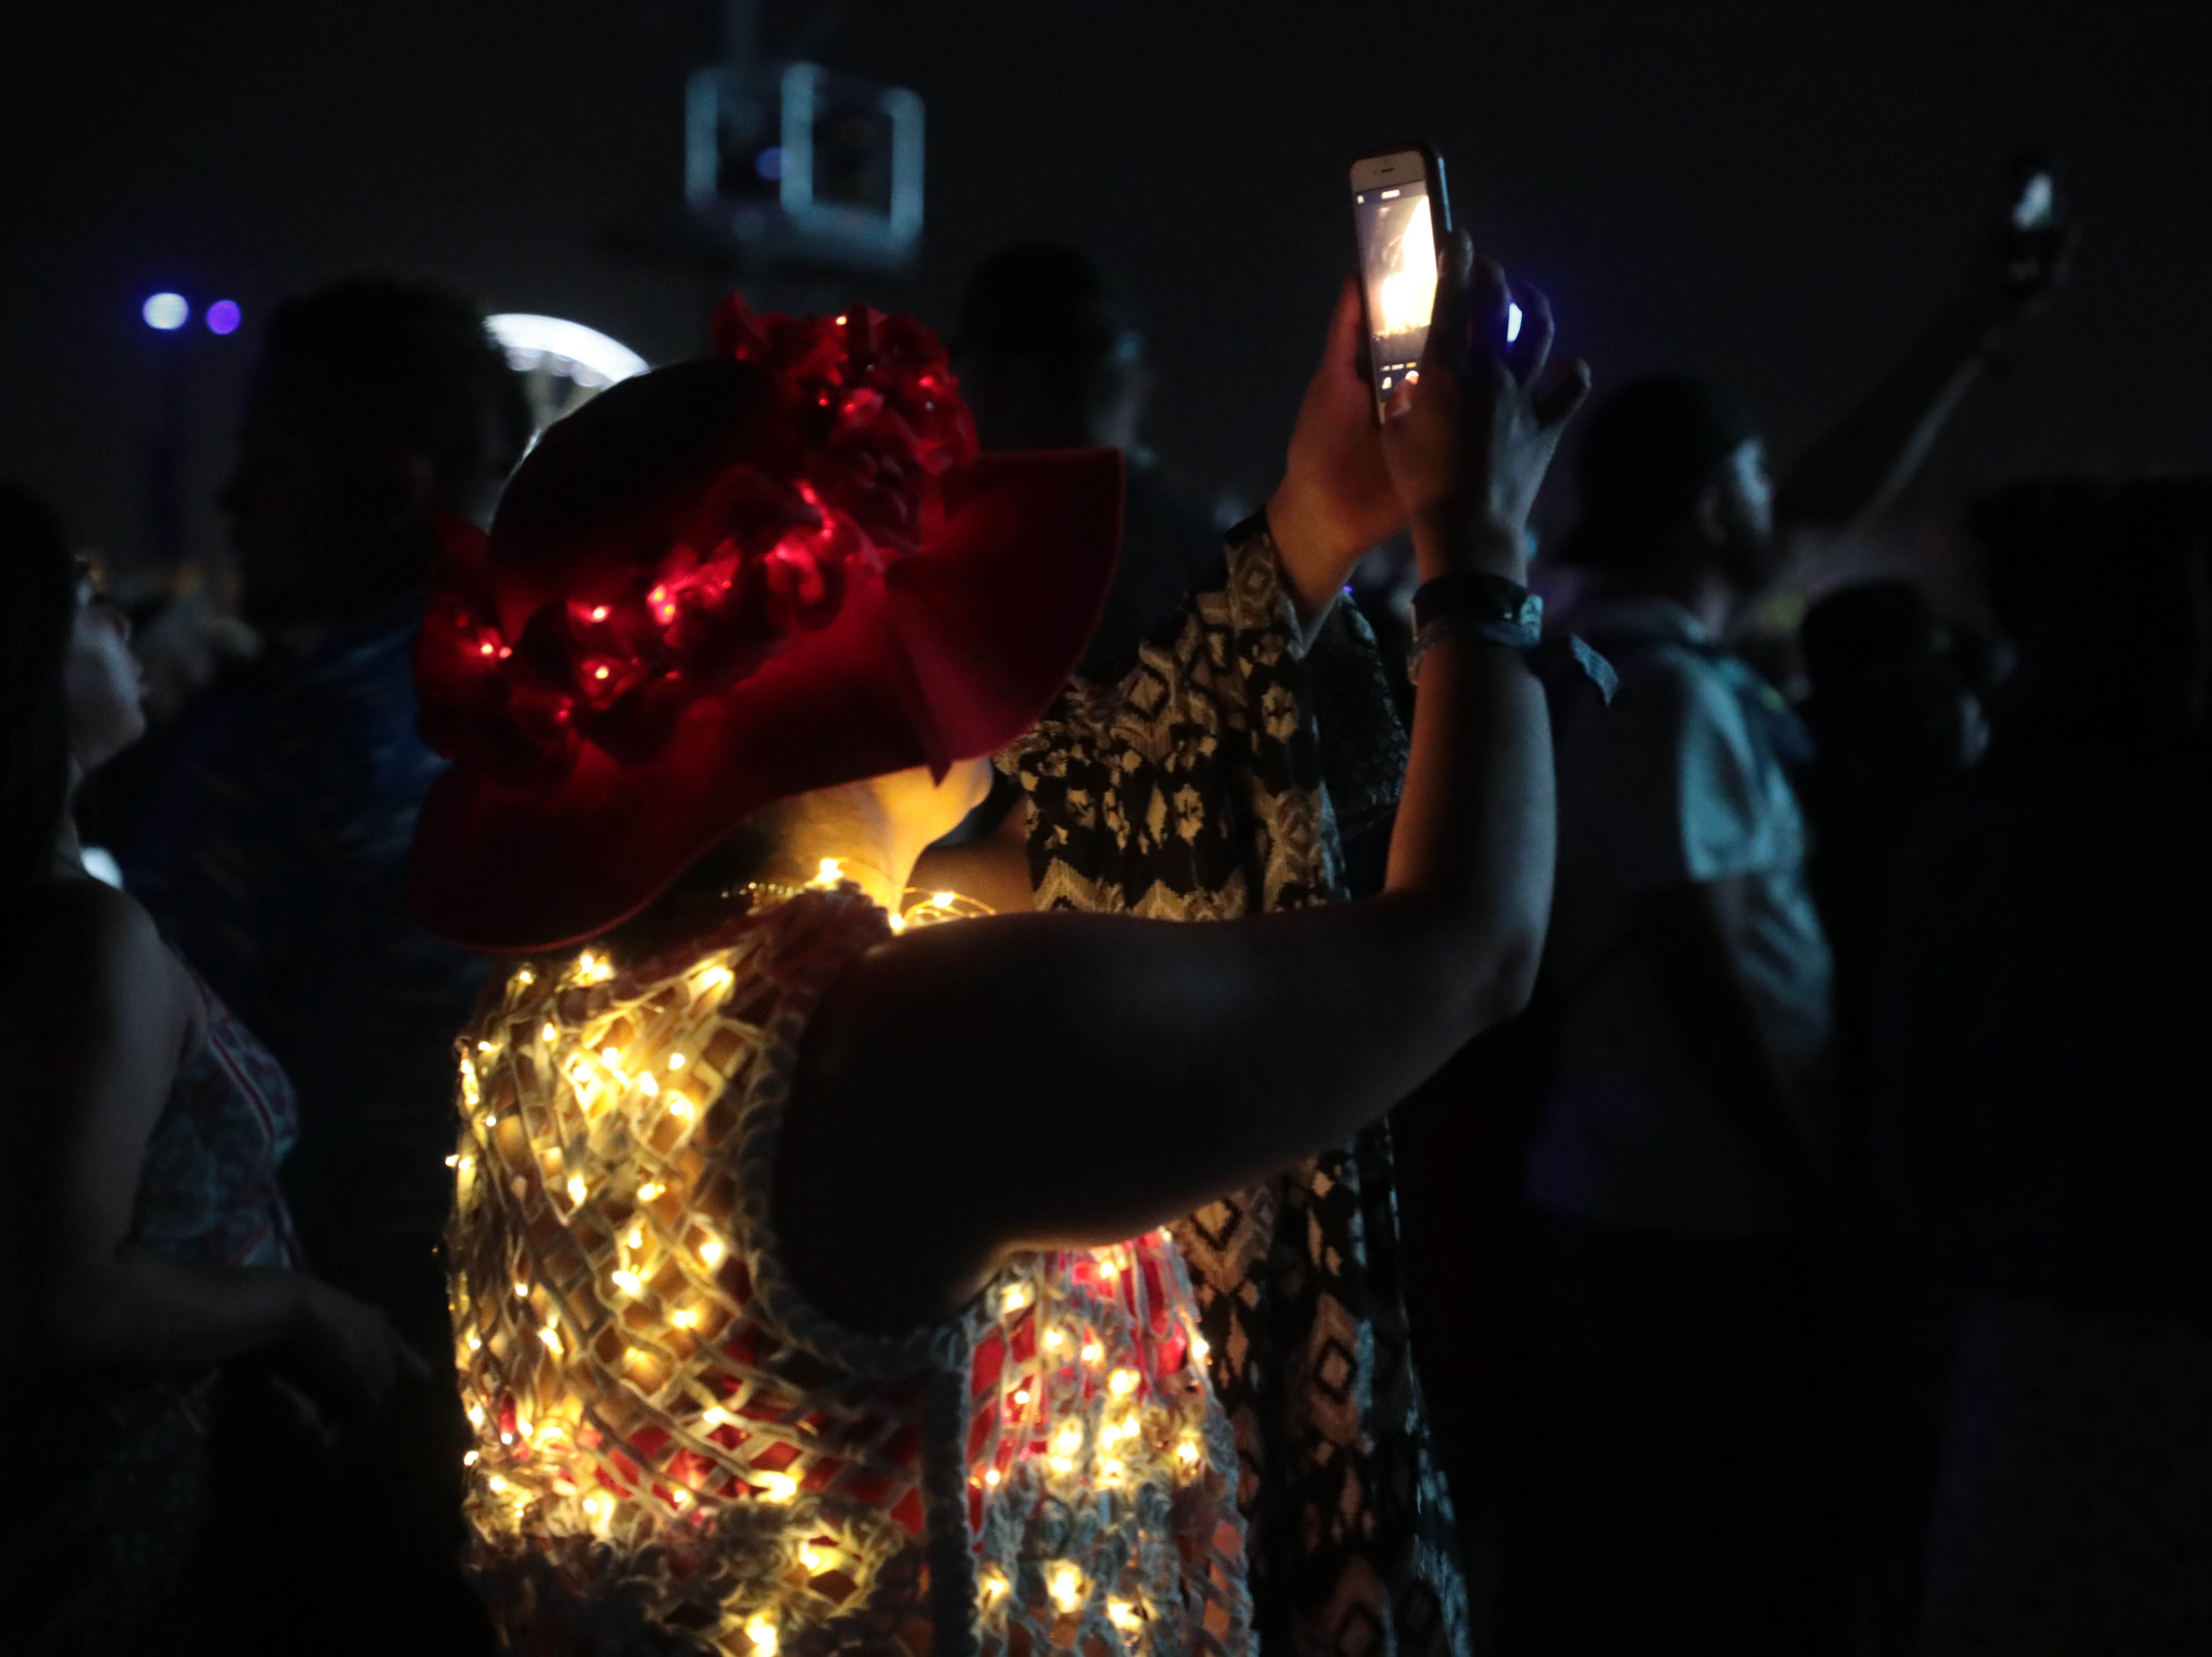 A woman takes a photo as Khalid performs at the Coachella Valley Music and Arts Festival on Sunday, April 14, 2019 in Indio, Calif.